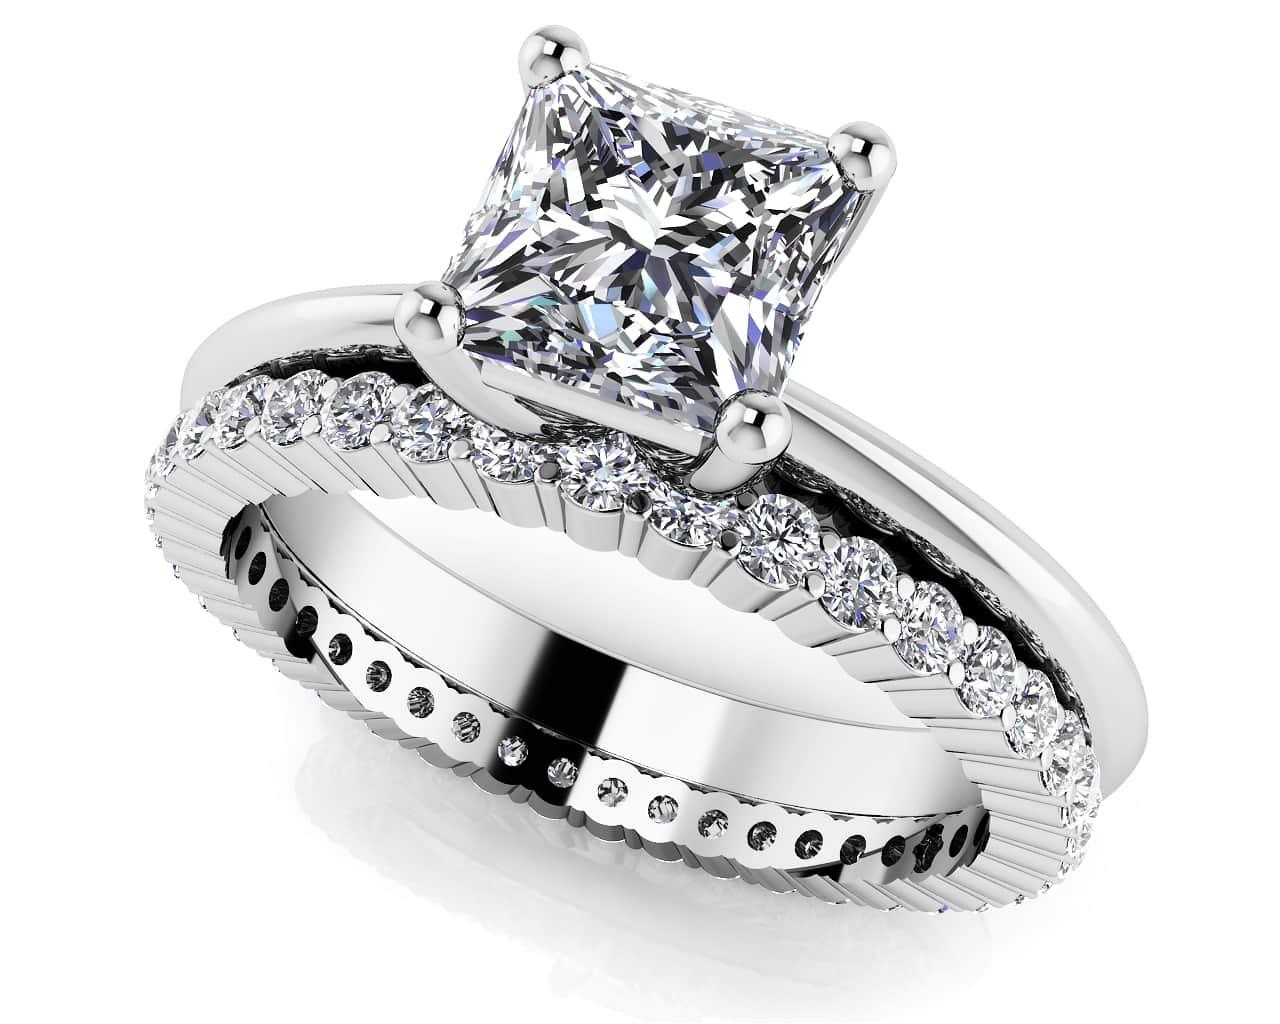 customize your wedding set matching diamond bridal set - Solitaire Wedding Ring Sets